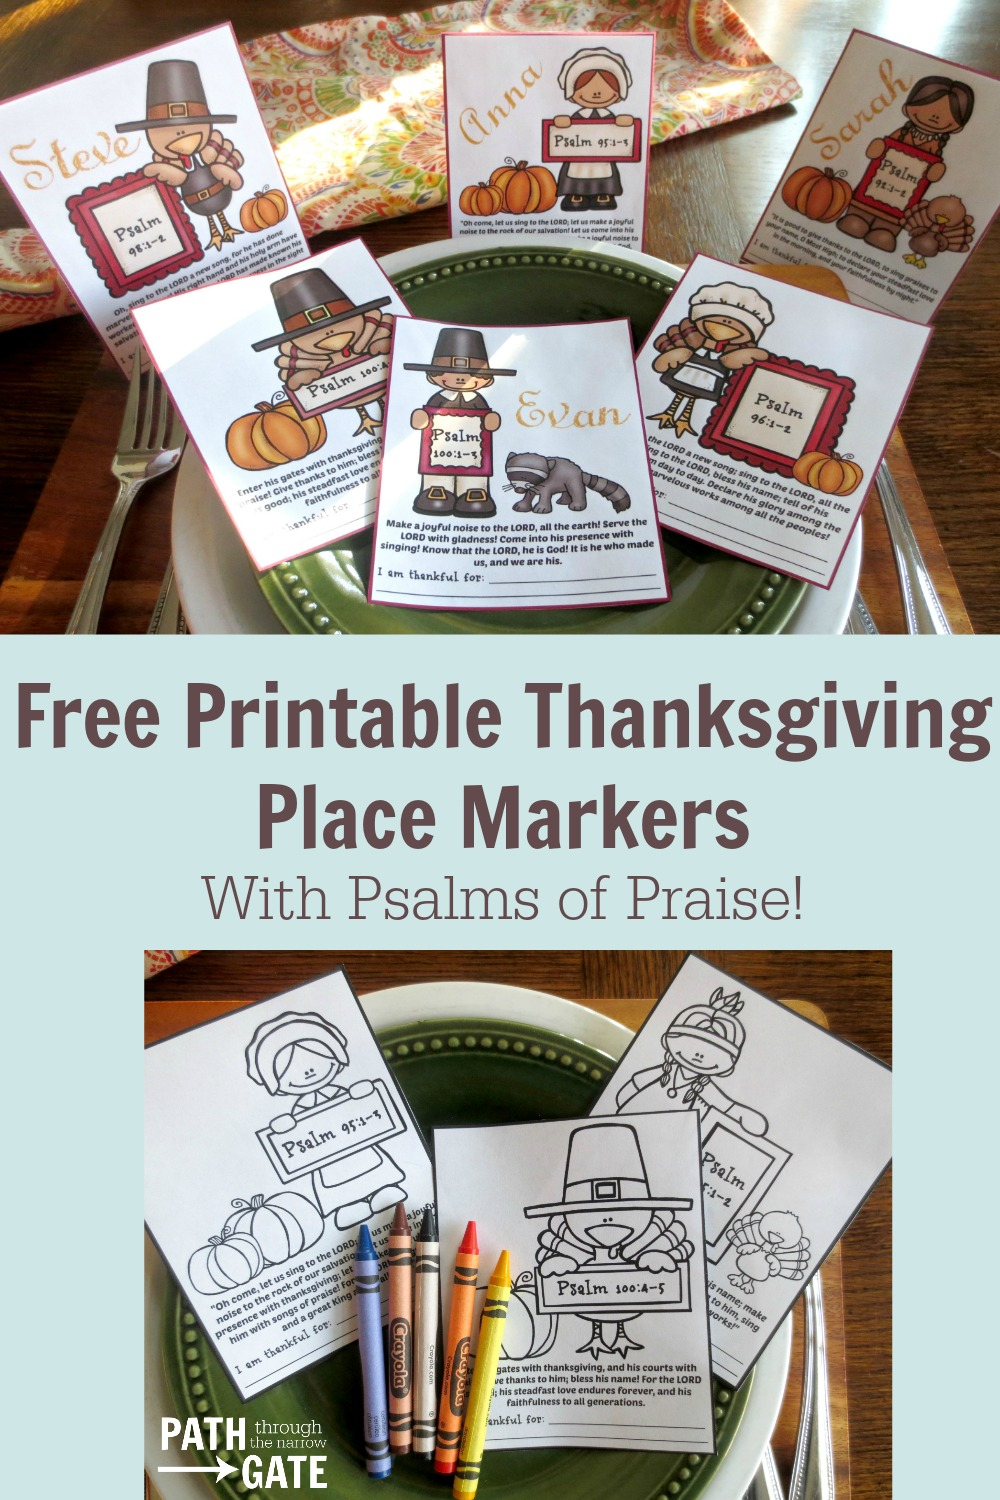 Are you looking for a way to add some verses of Thanksgiving to your holiday table? These adorable Printable Thanksgiving Place Holders are just the ticket! They come in three different Bible versions. My kids would love coloring these on Thanksgiving!